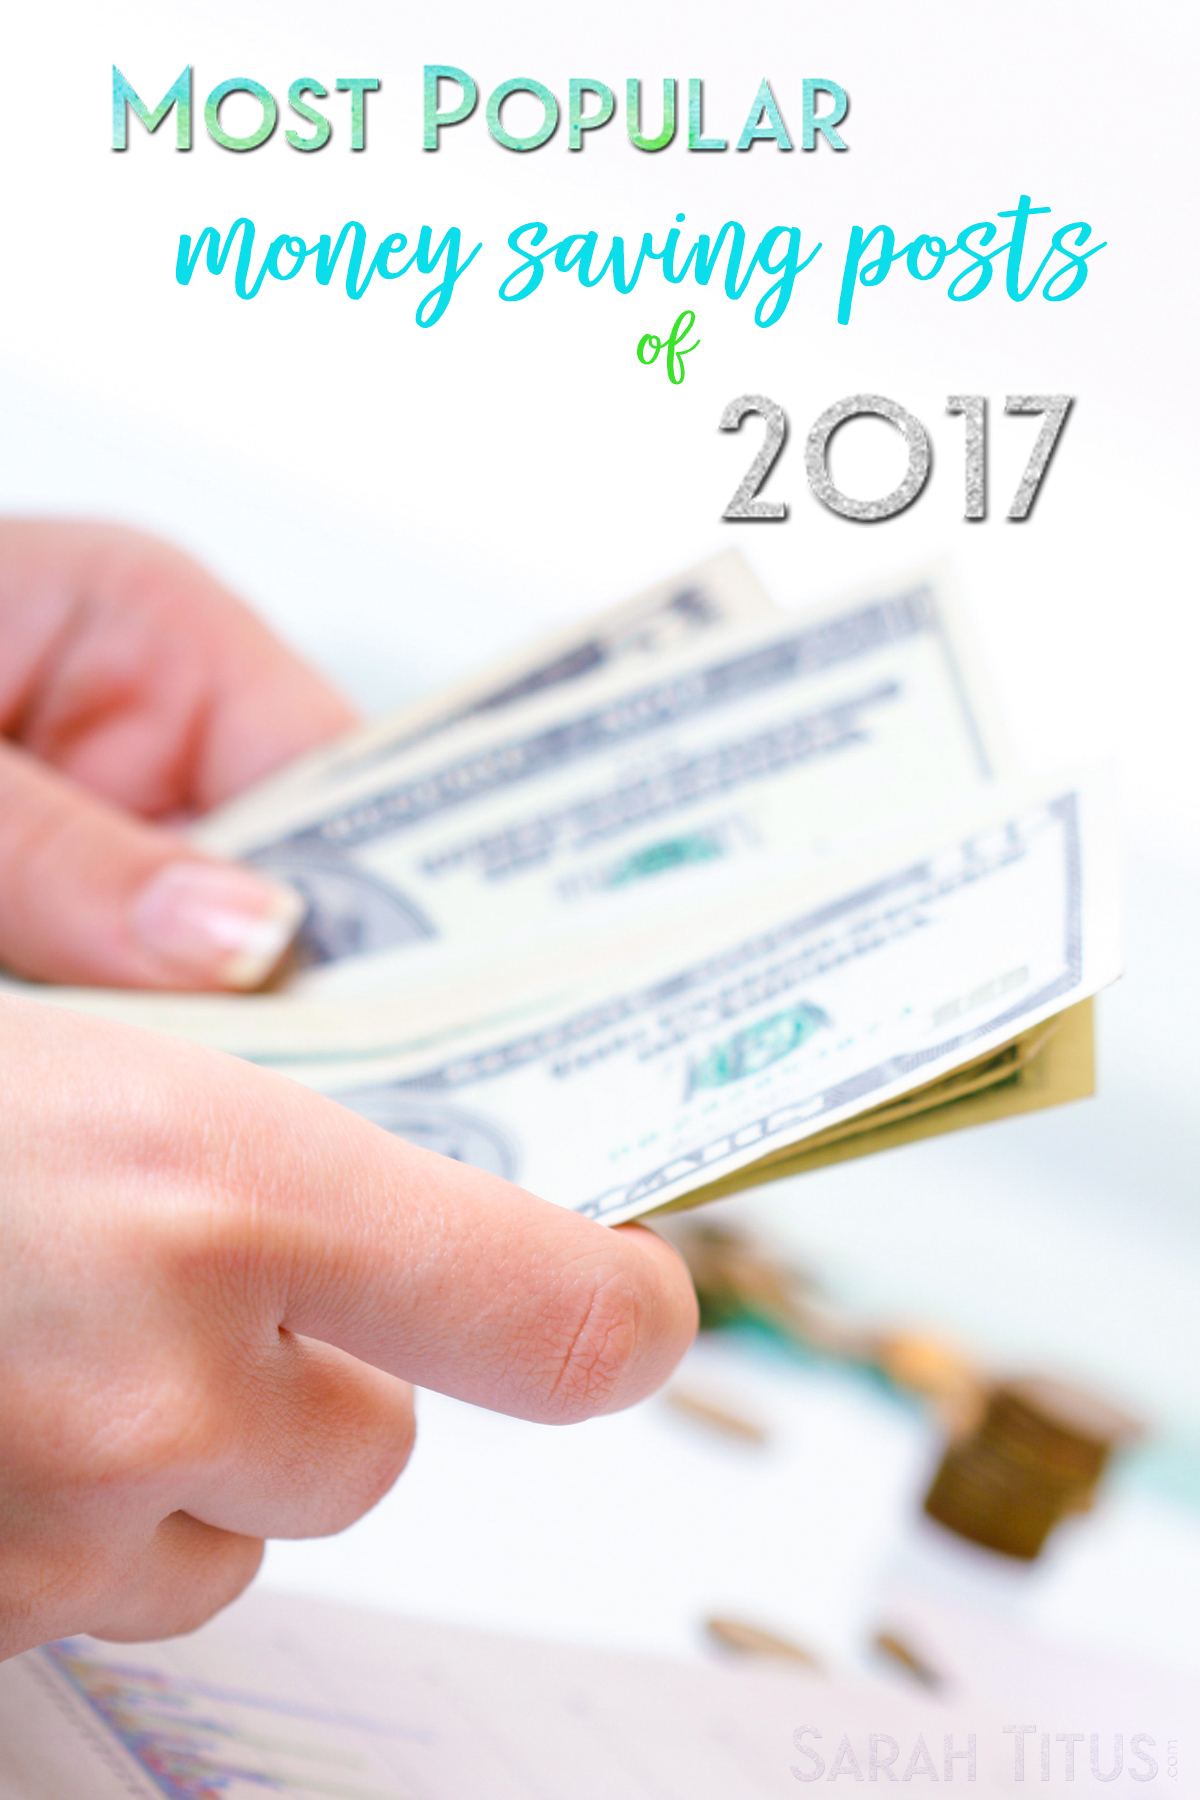 I spent several days mulling through a lot of articles and using online tools to research which were the most popular posts. Here are the most popular money saving articles for 2017.